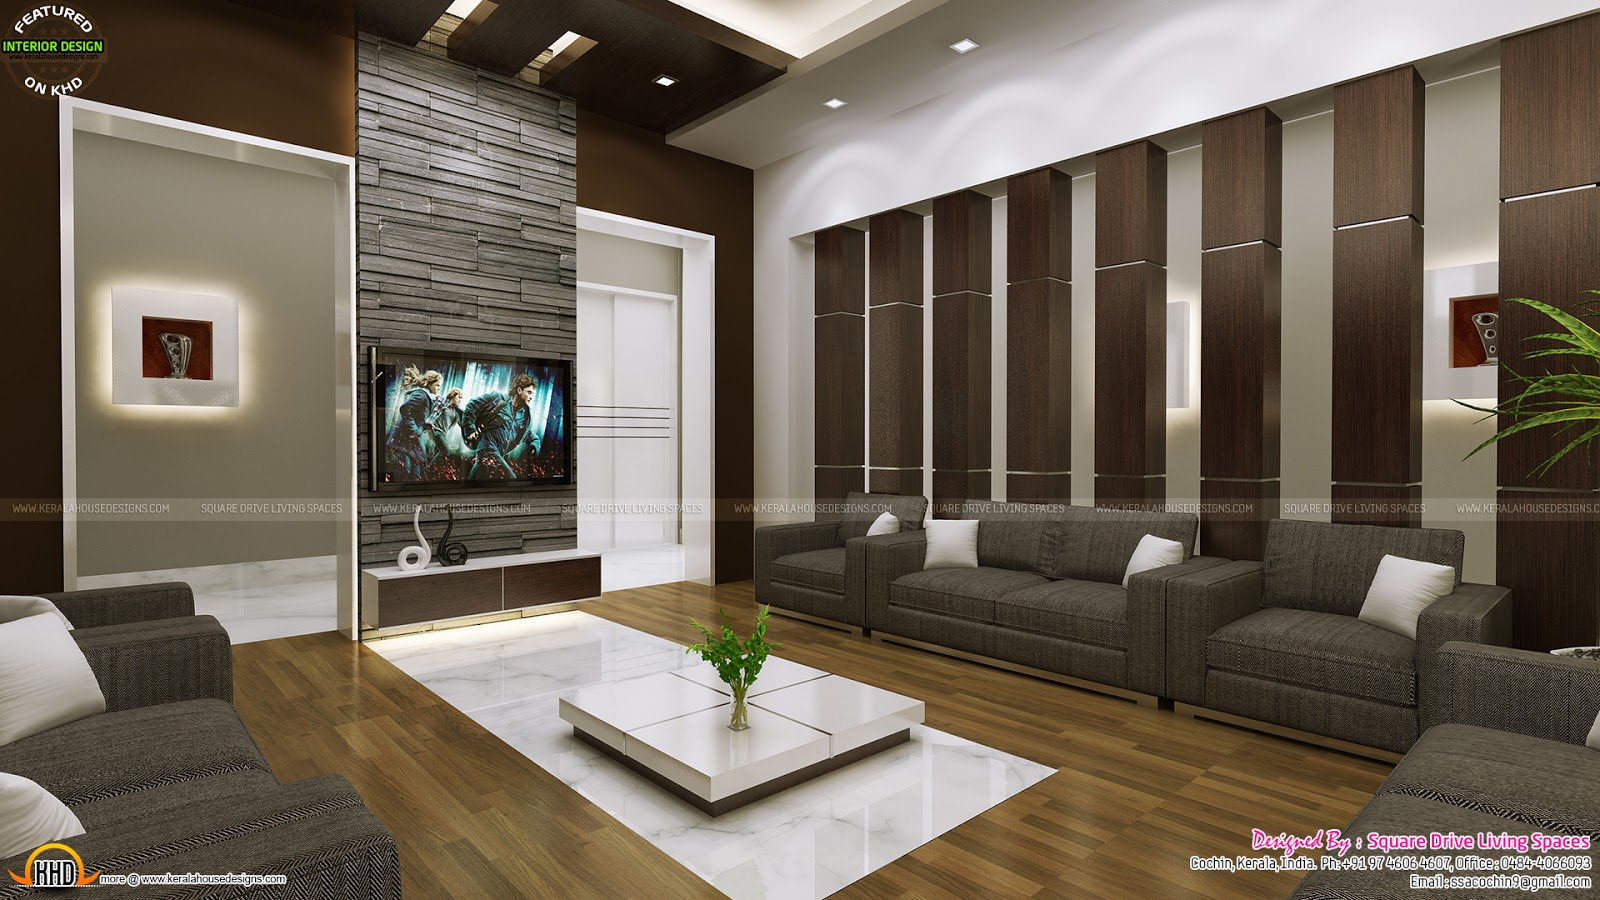 Attractive home interior ideas kerala home design and for Home inside decoration photos